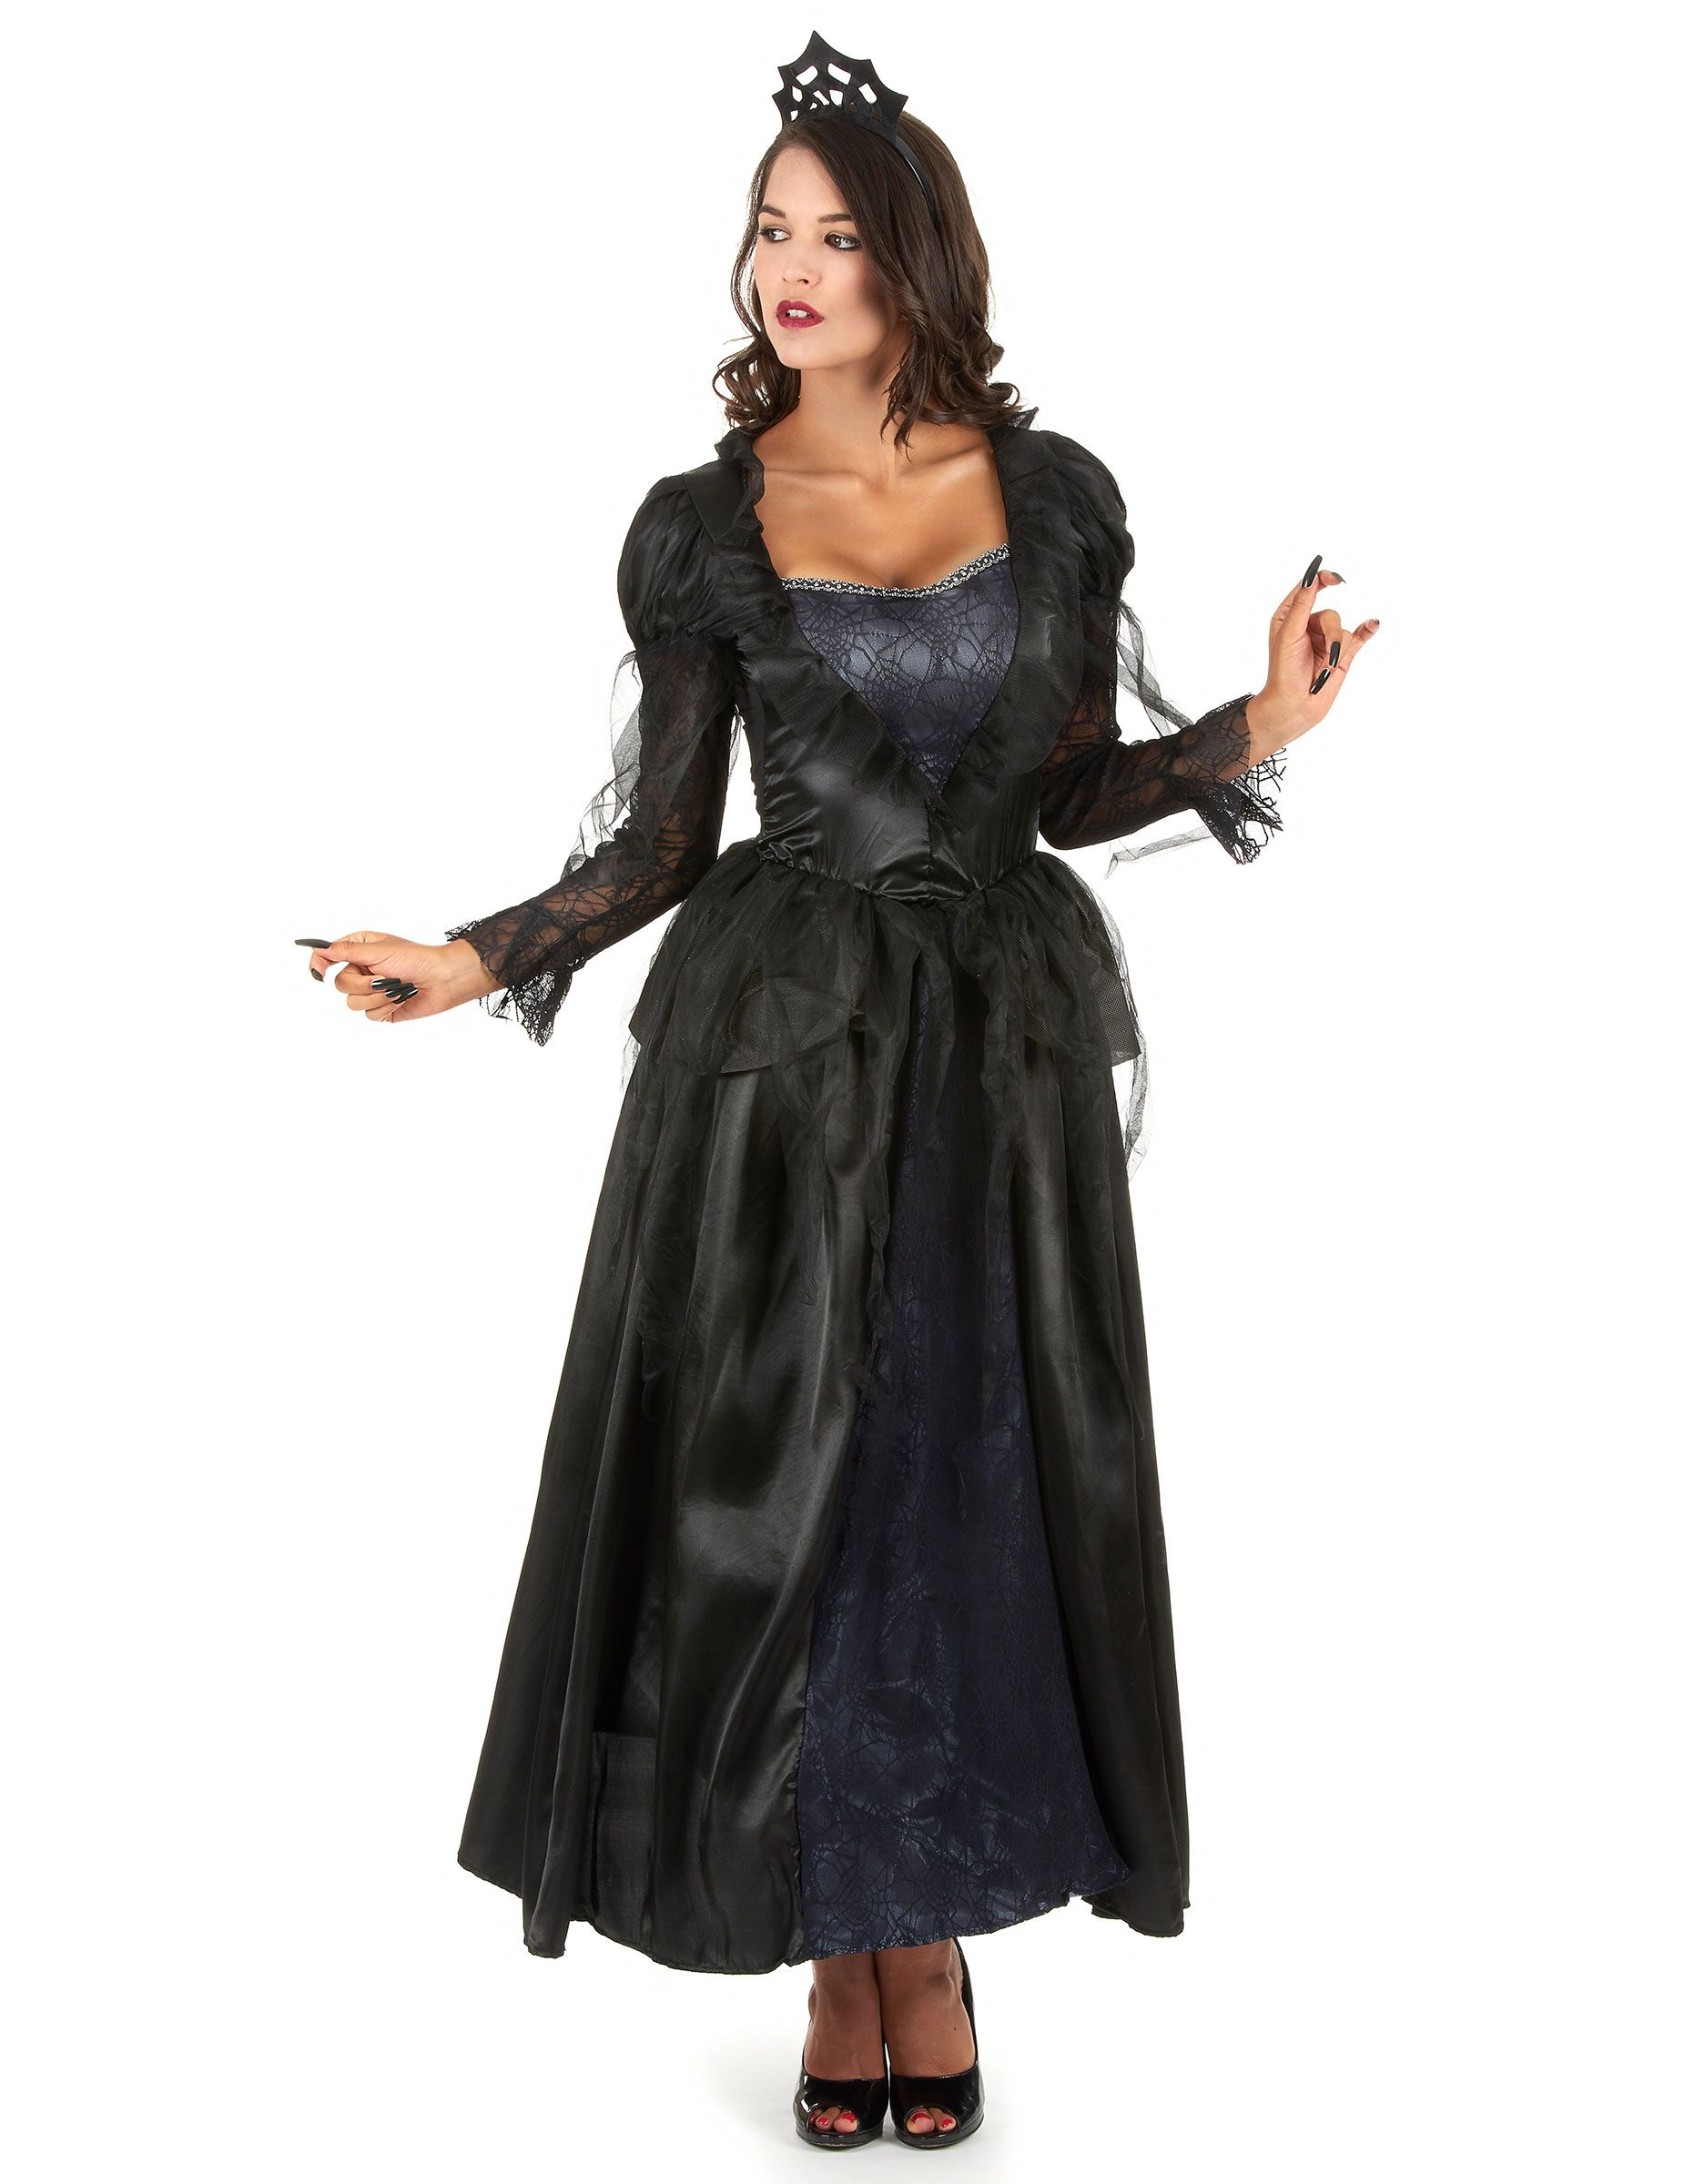 d guisement comtesse femme halloween robe longue noire d guisements et araign es. Black Bedroom Furniture Sets. Home Design Ideas